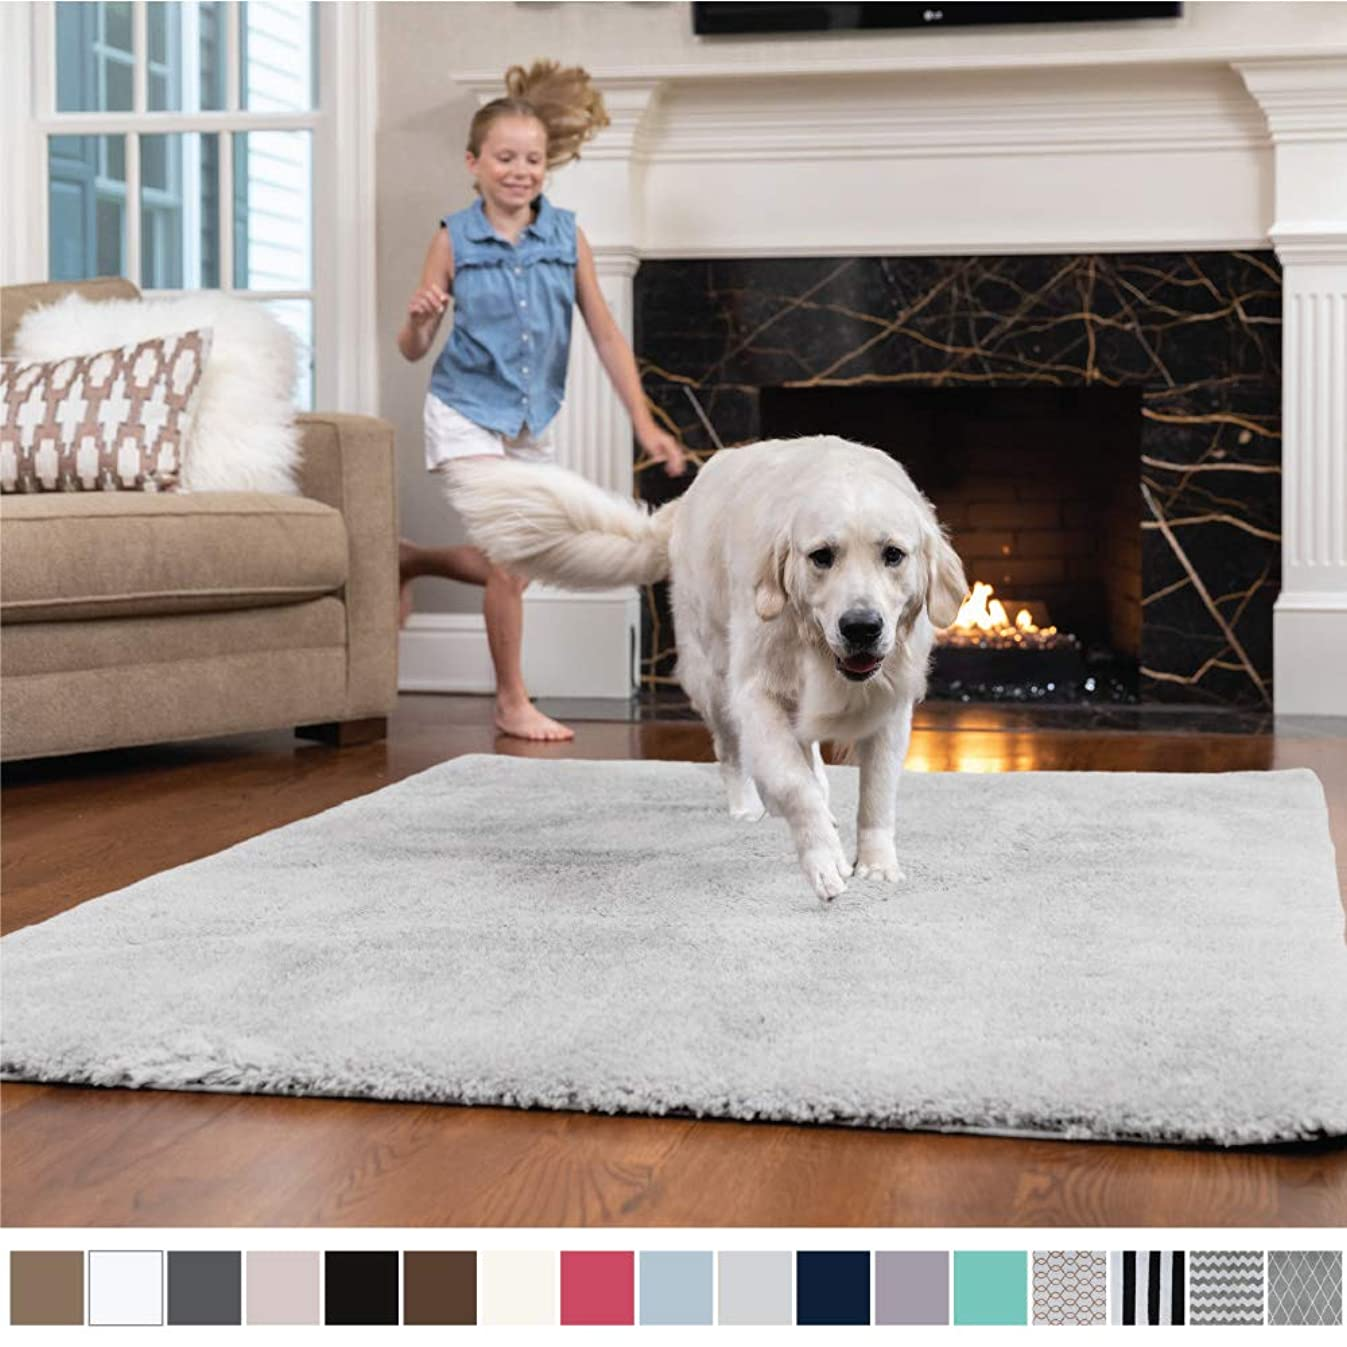 GORILLA GRIP Original Faux-Chinchilla Nursery Area Rug, (4' x 6') Super Soft & Cozy High Pile Machine Washable Carpet, Modern Rugs for Floor, Luxury Shag Carpets for Home Bed/Living Room (Light Gray)